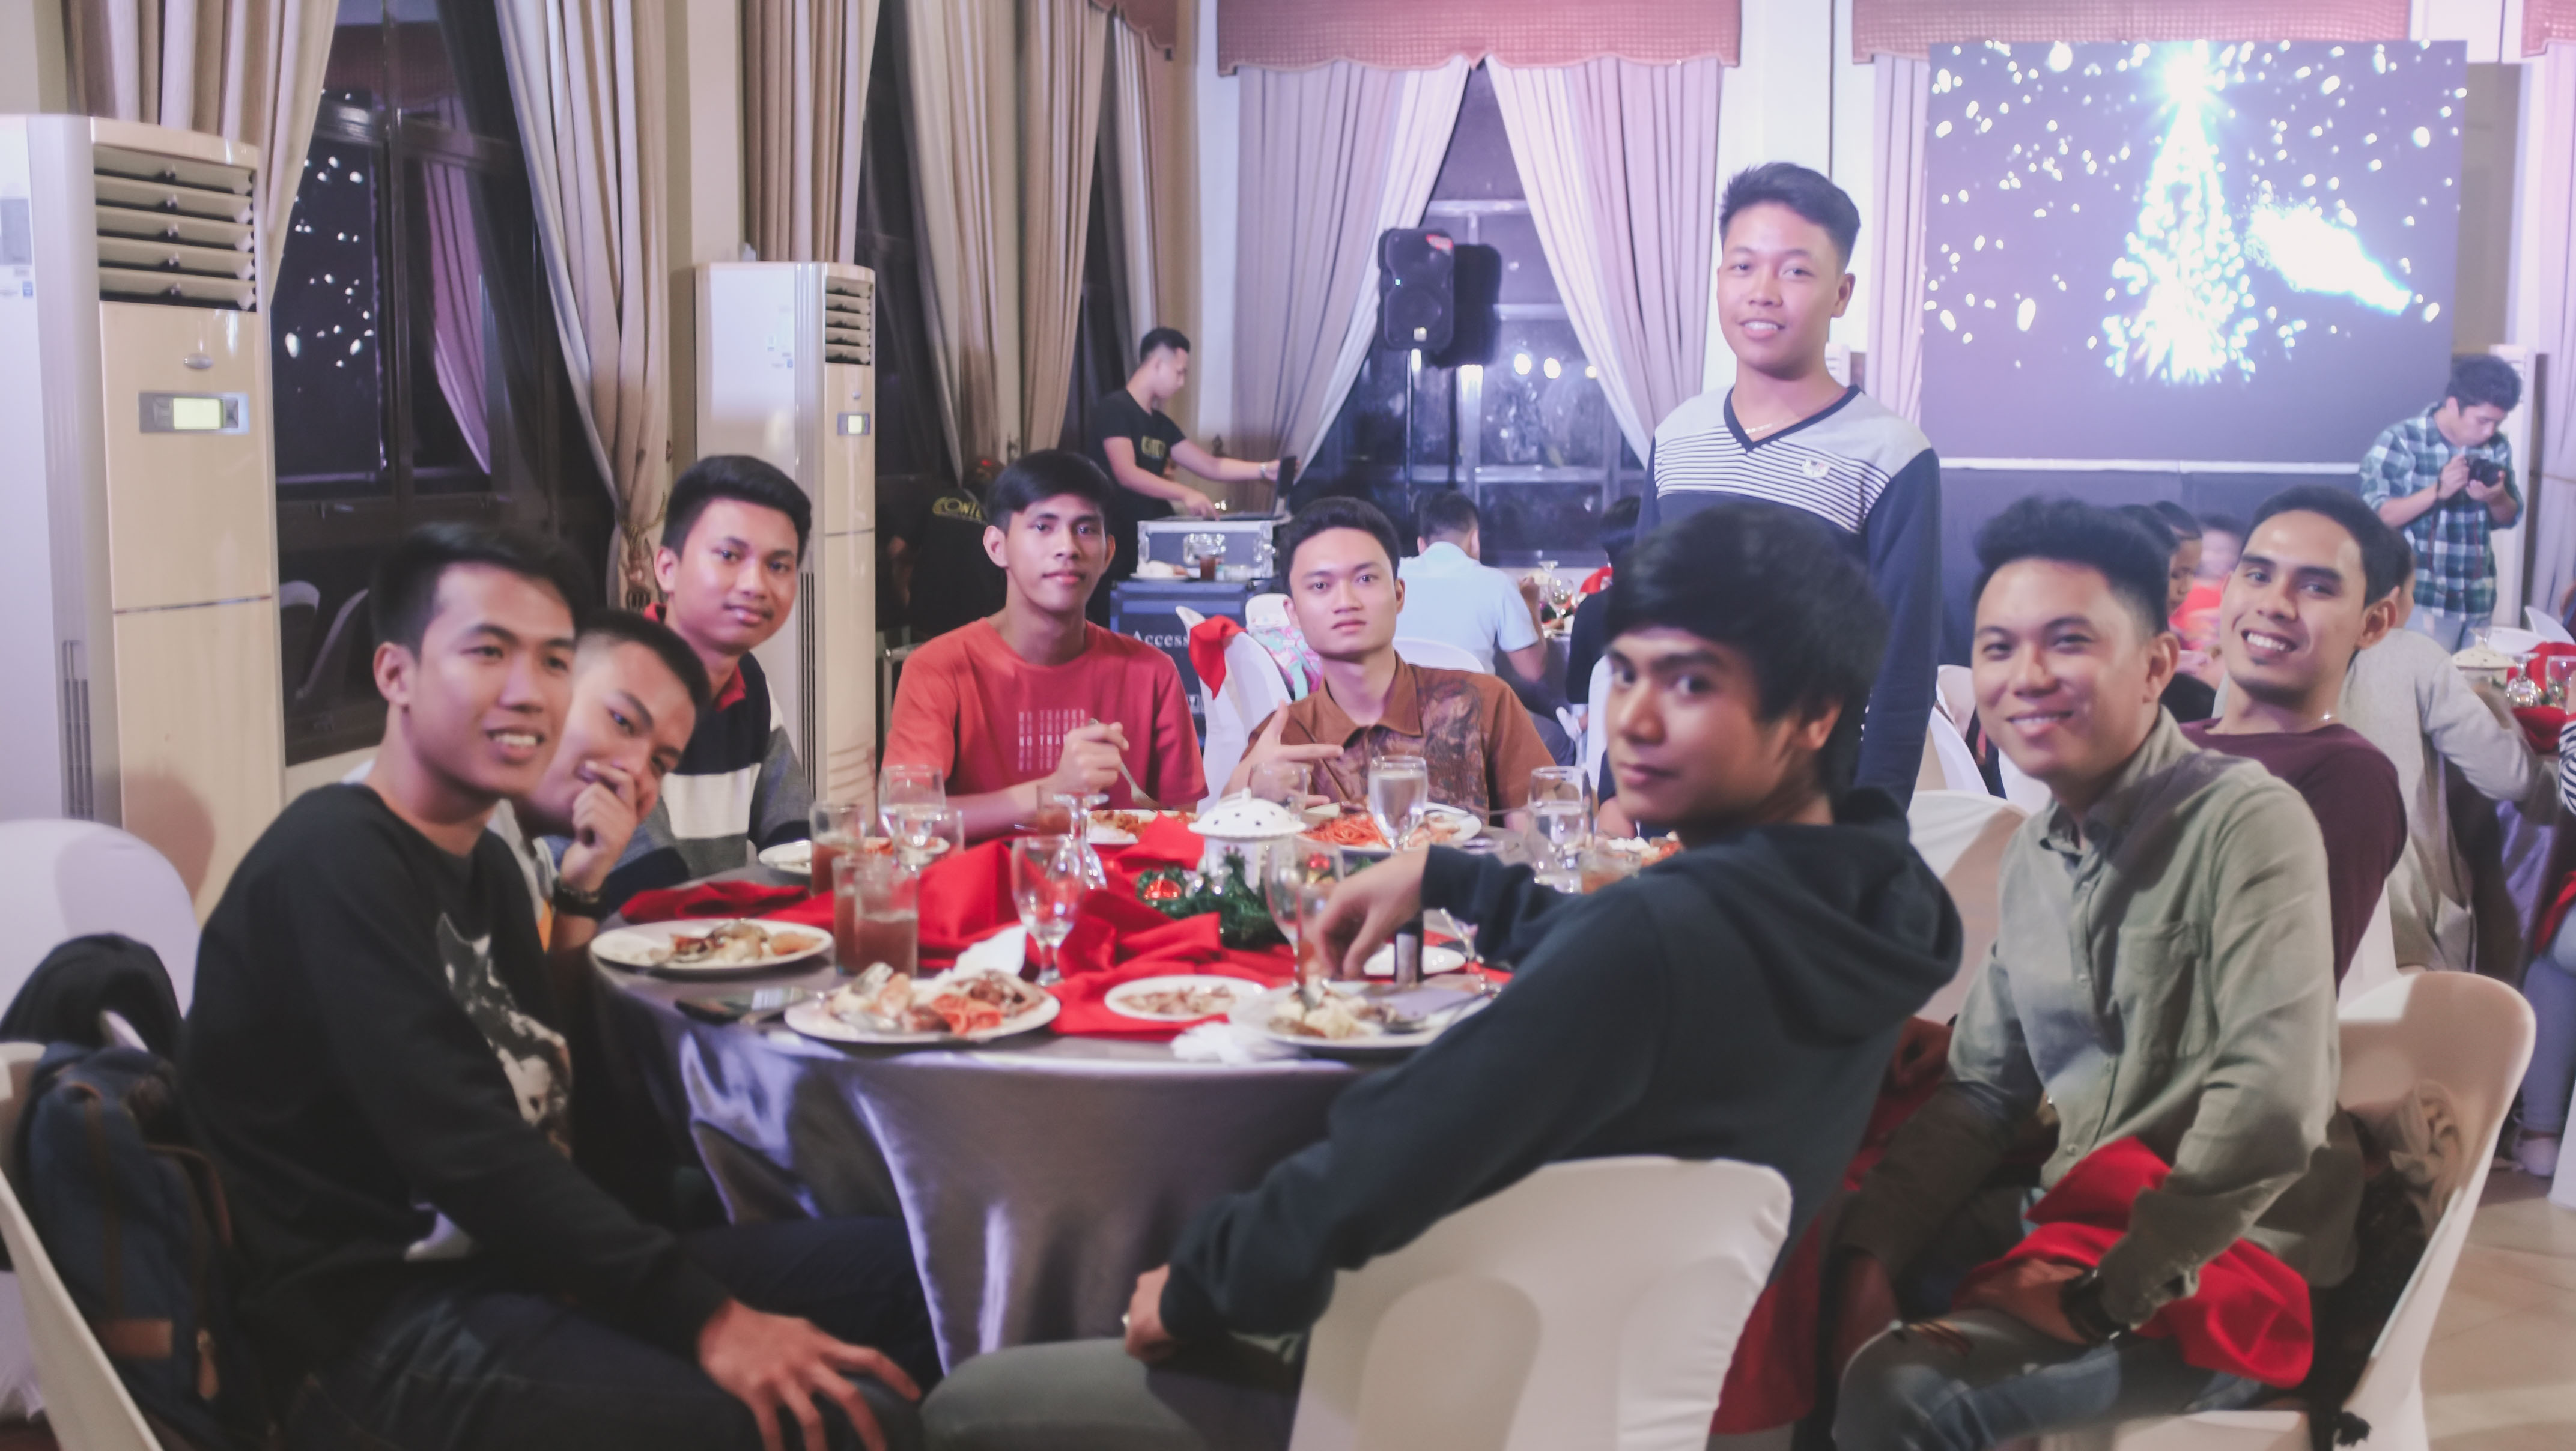 CHRISTMAS PARTY_2018-74288 x 2416